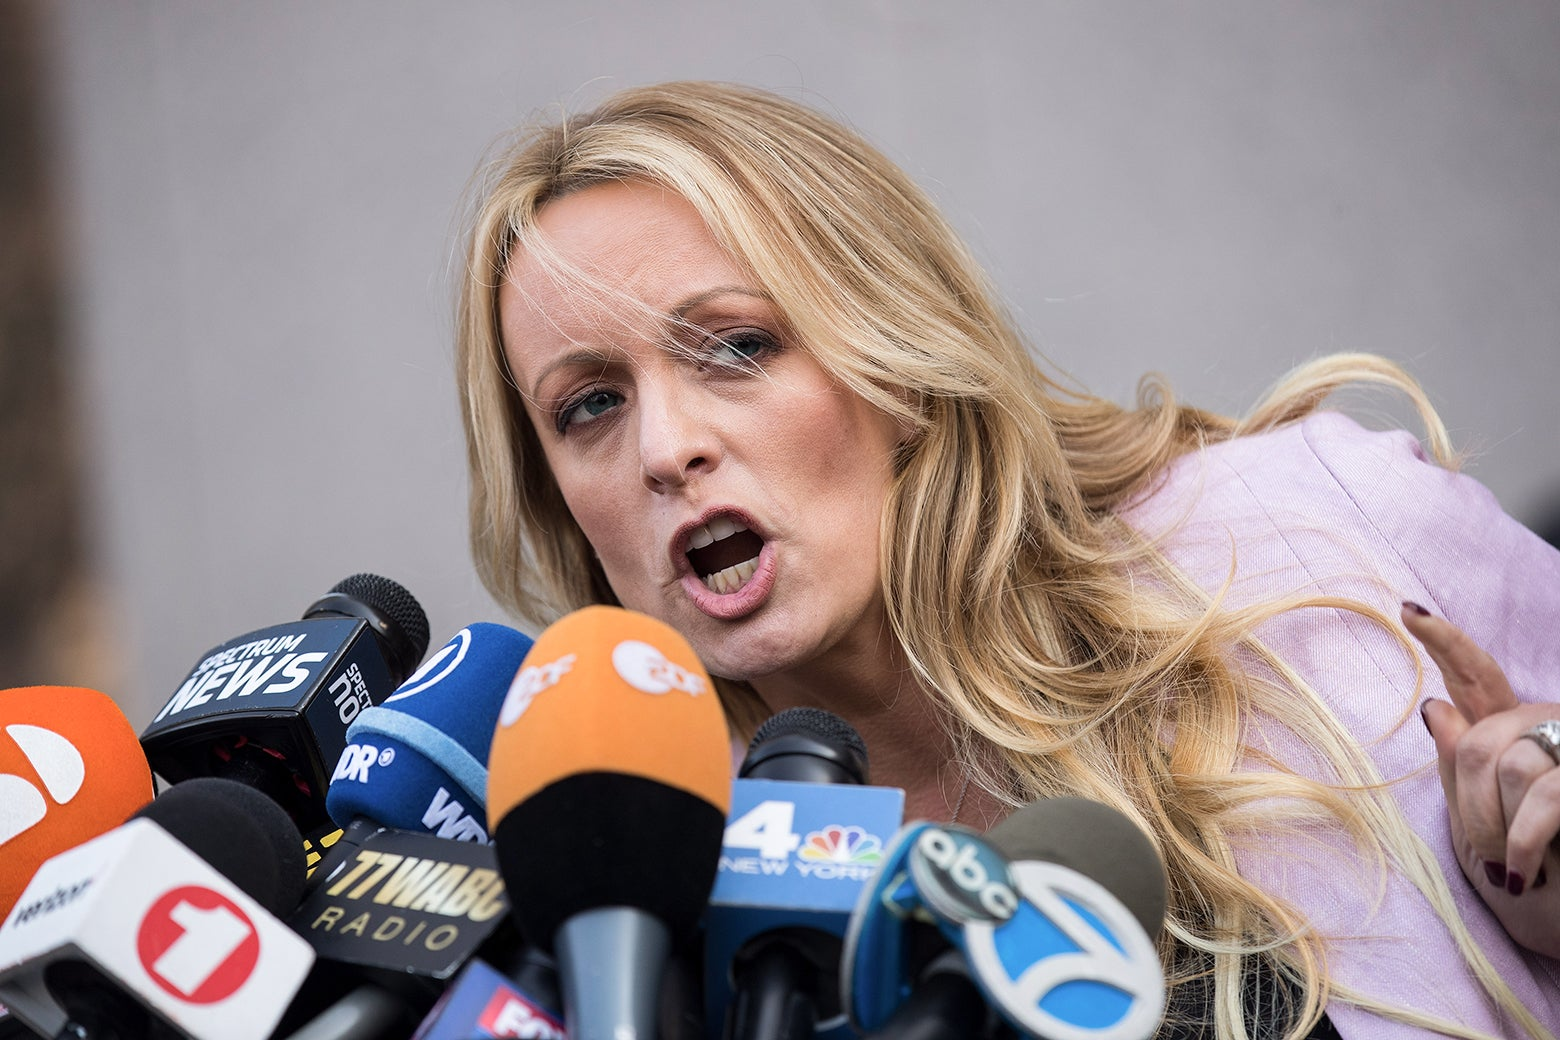 Stormy Daniels pointing and speaking into a scrum of microphones.